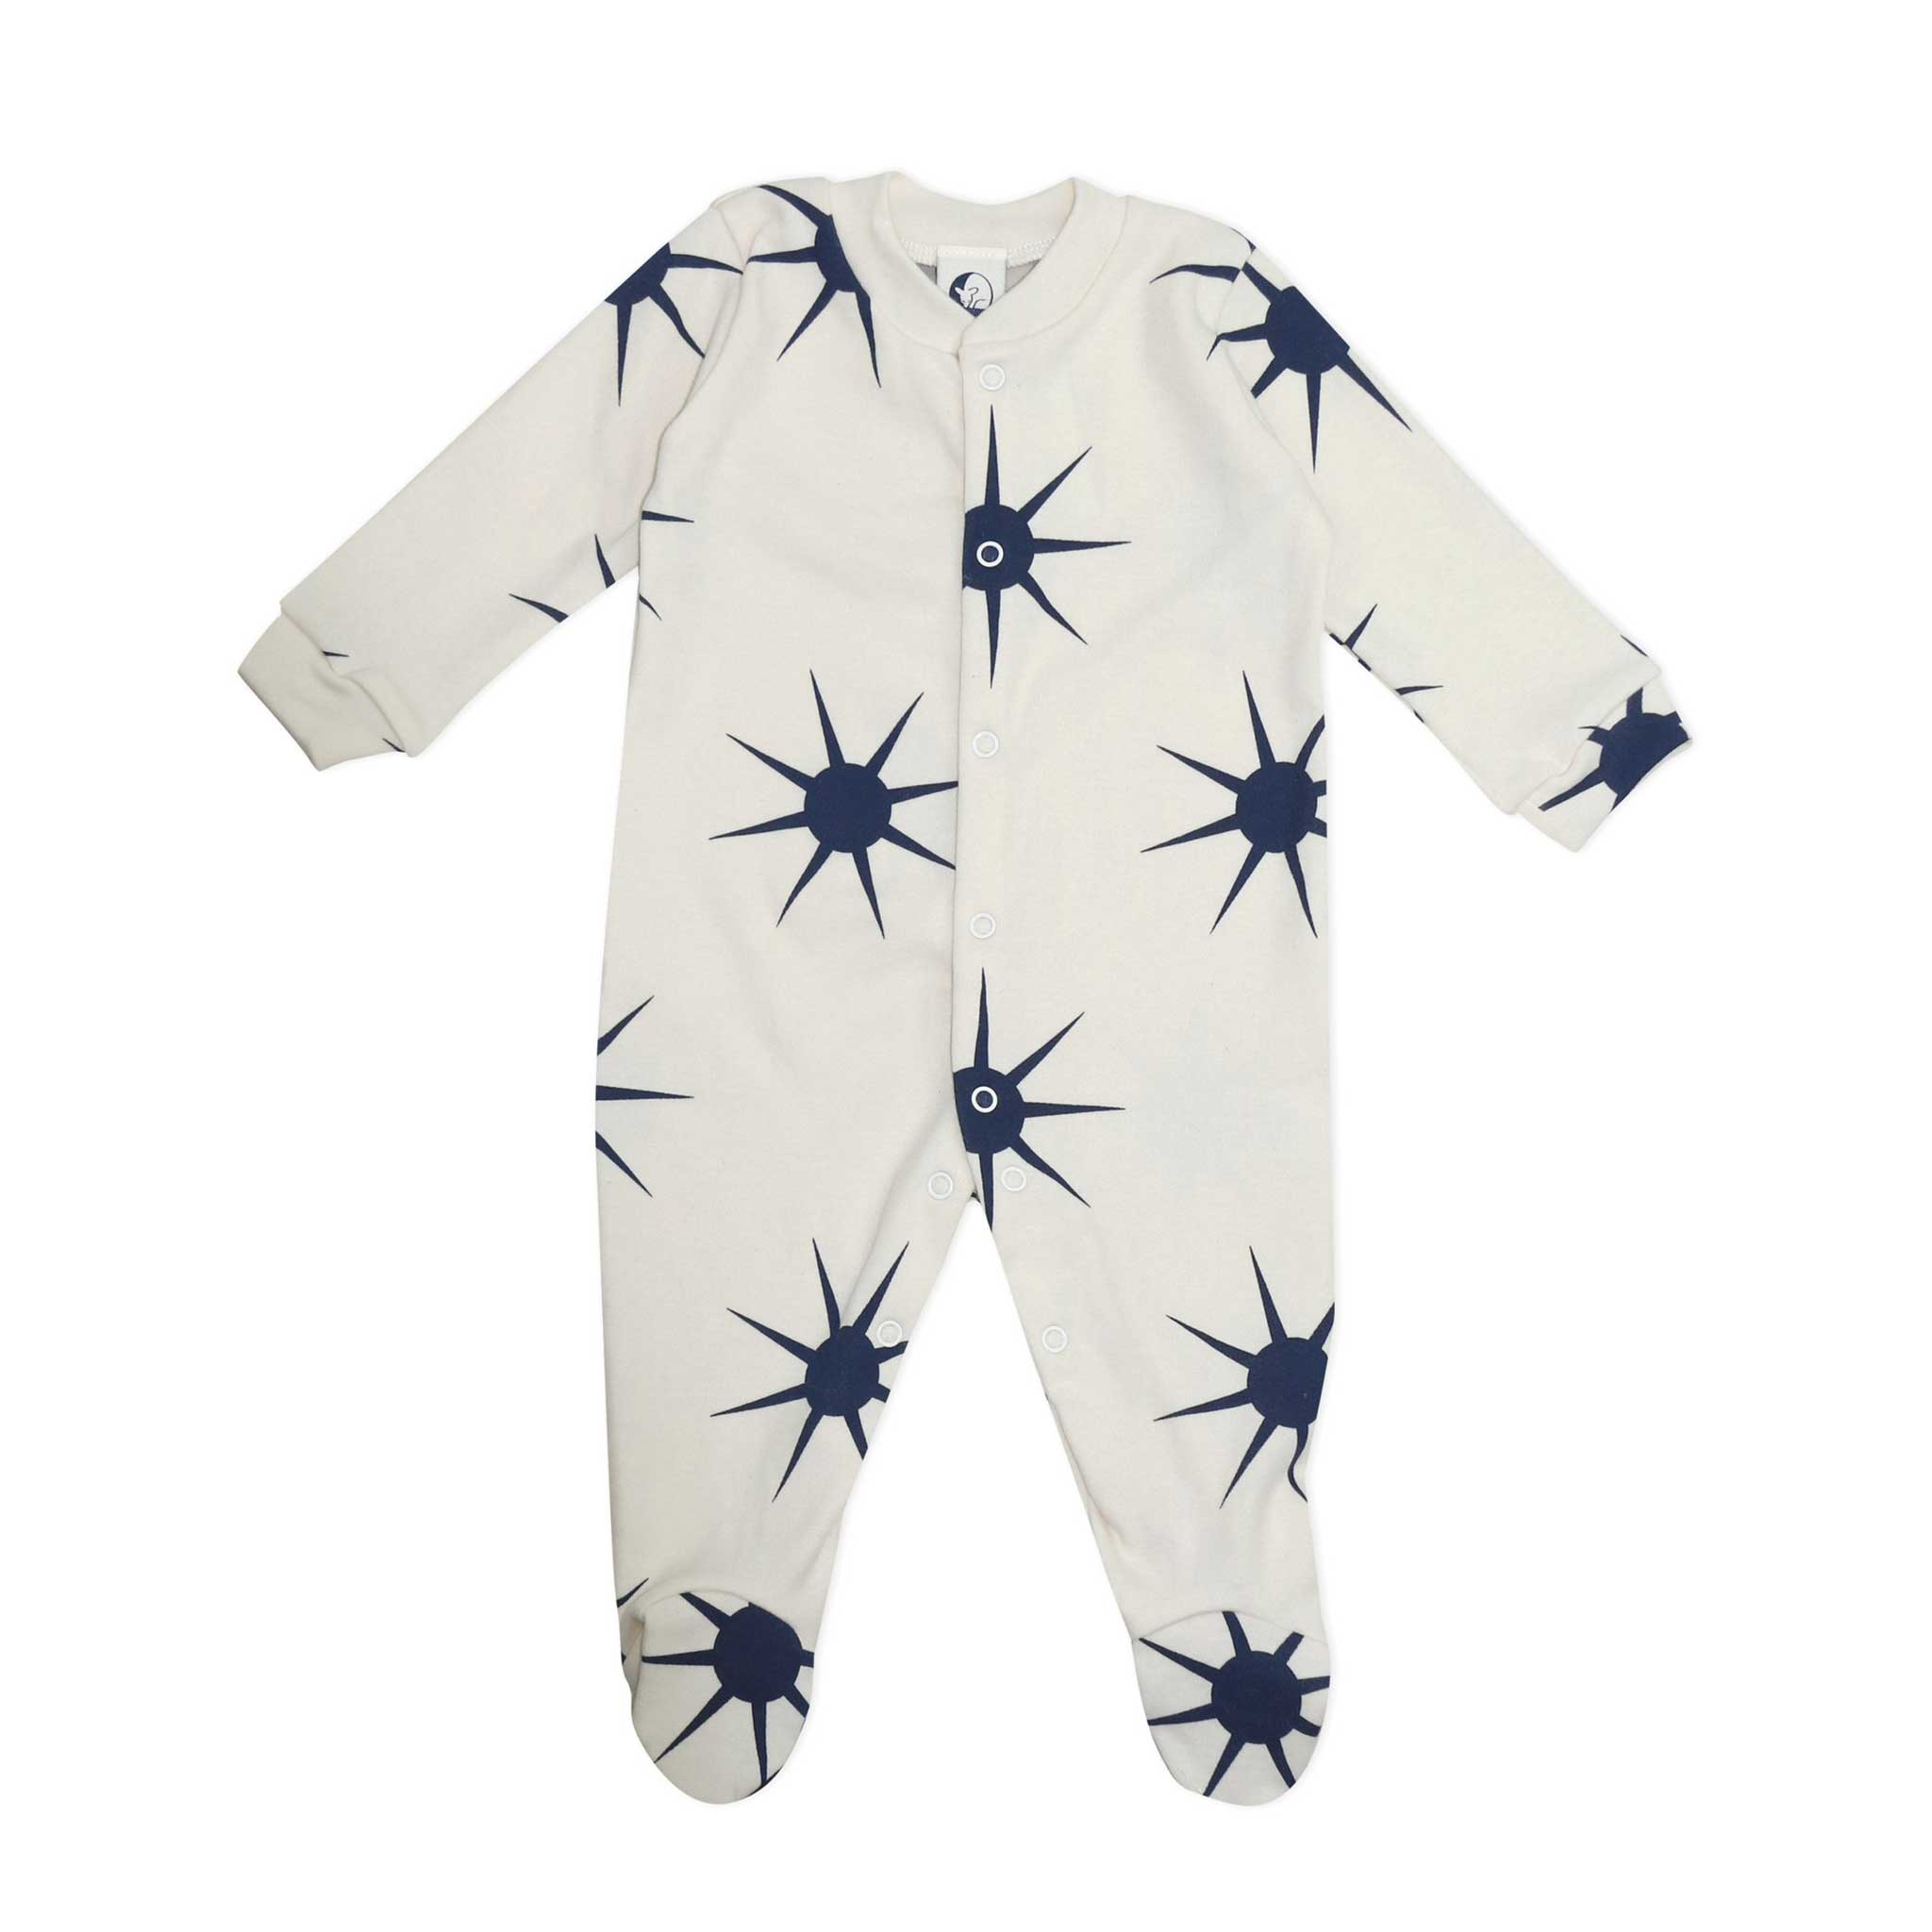 SLEEPY DOE | Baby Sleepsuit | Sunshine Dusk